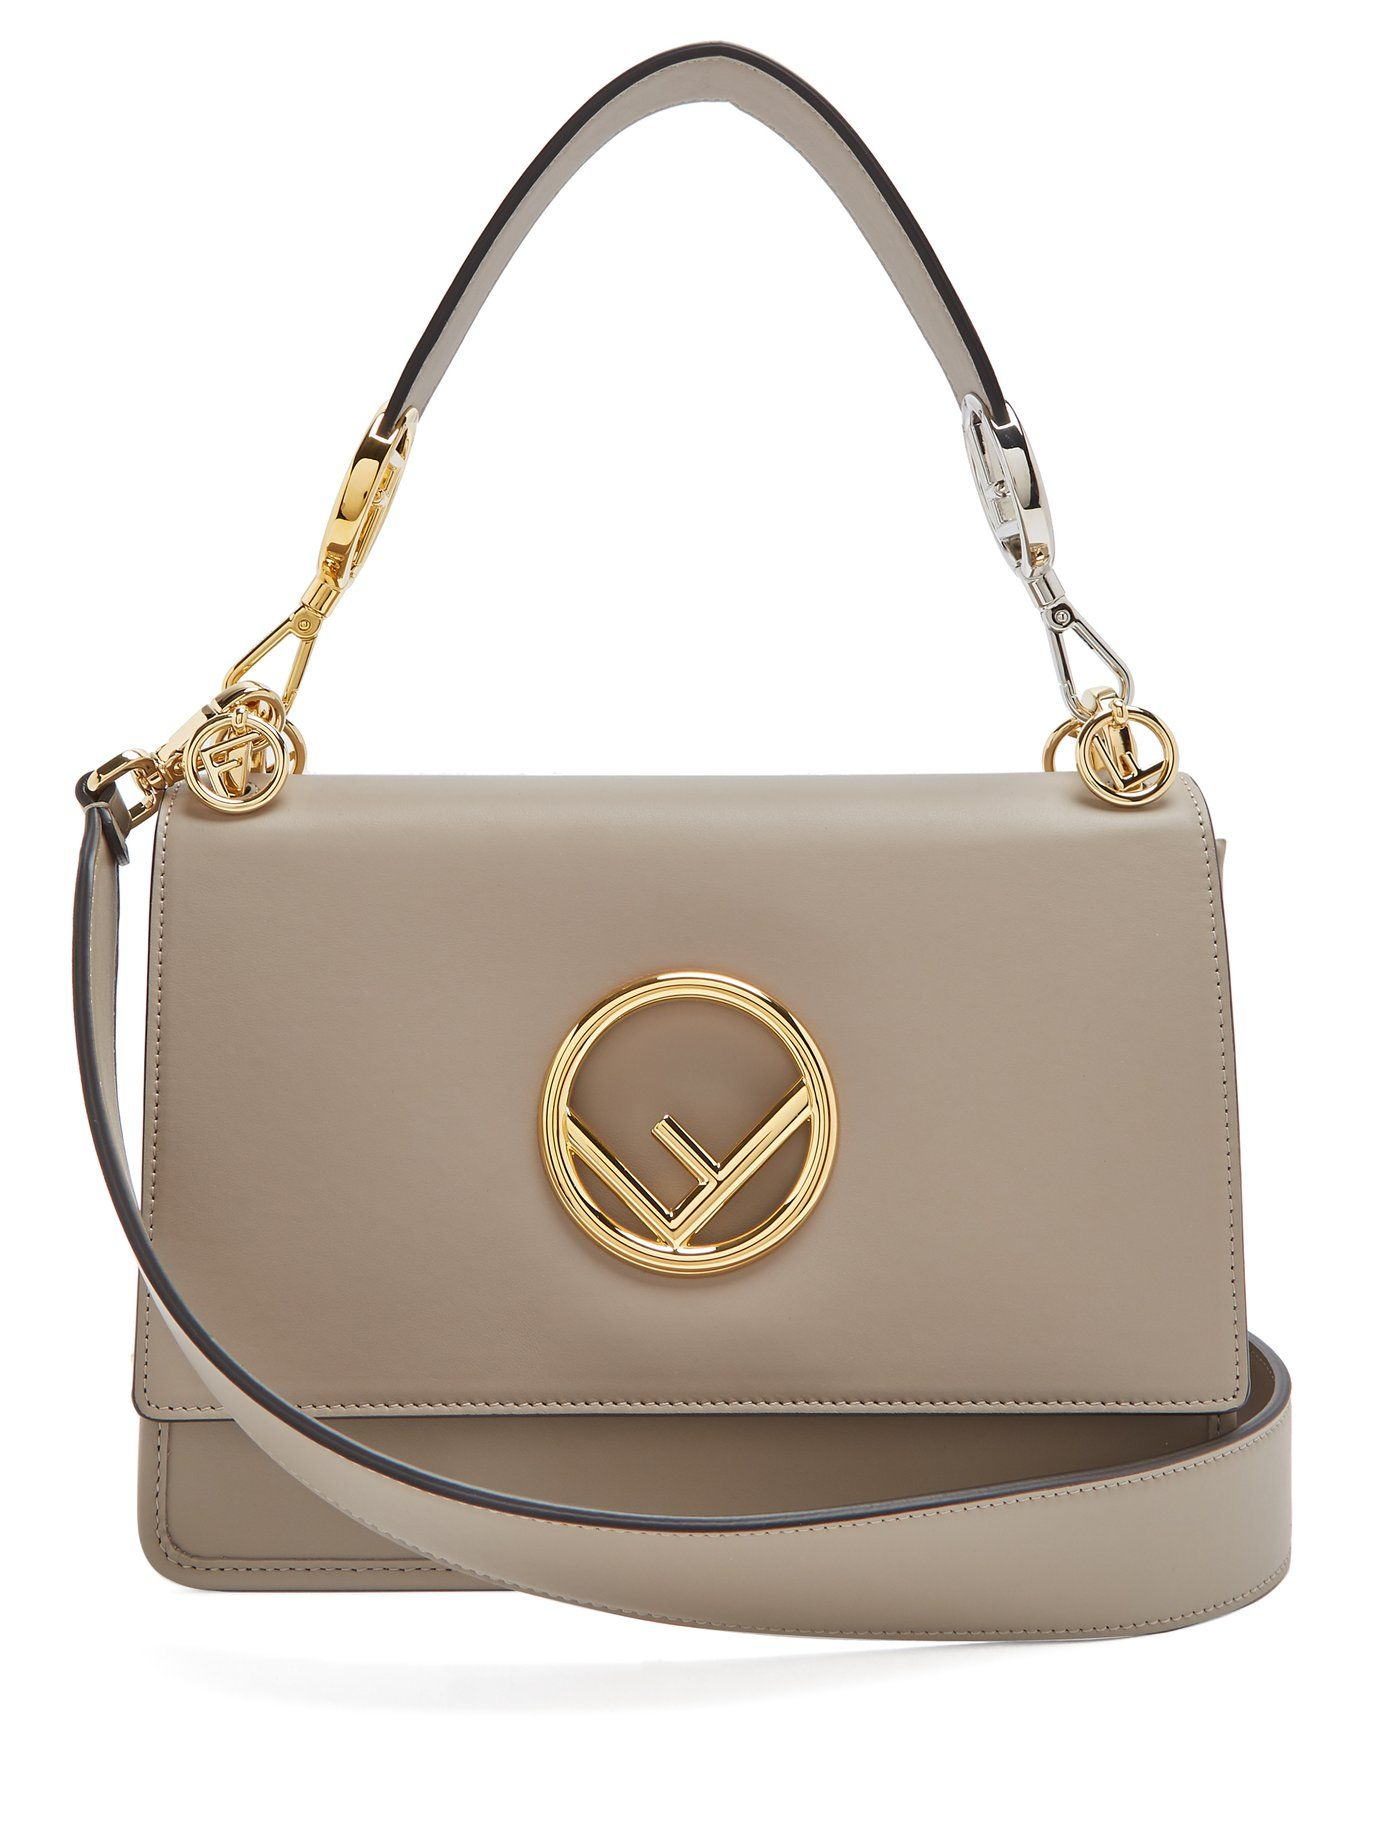 Taupe-grey calf-leather enhances the sophisticated versatility of Fendi s  Kan I Logo bag. It s made in Italy with gold and silver-tone metal  hardware, ... 18749c528b4